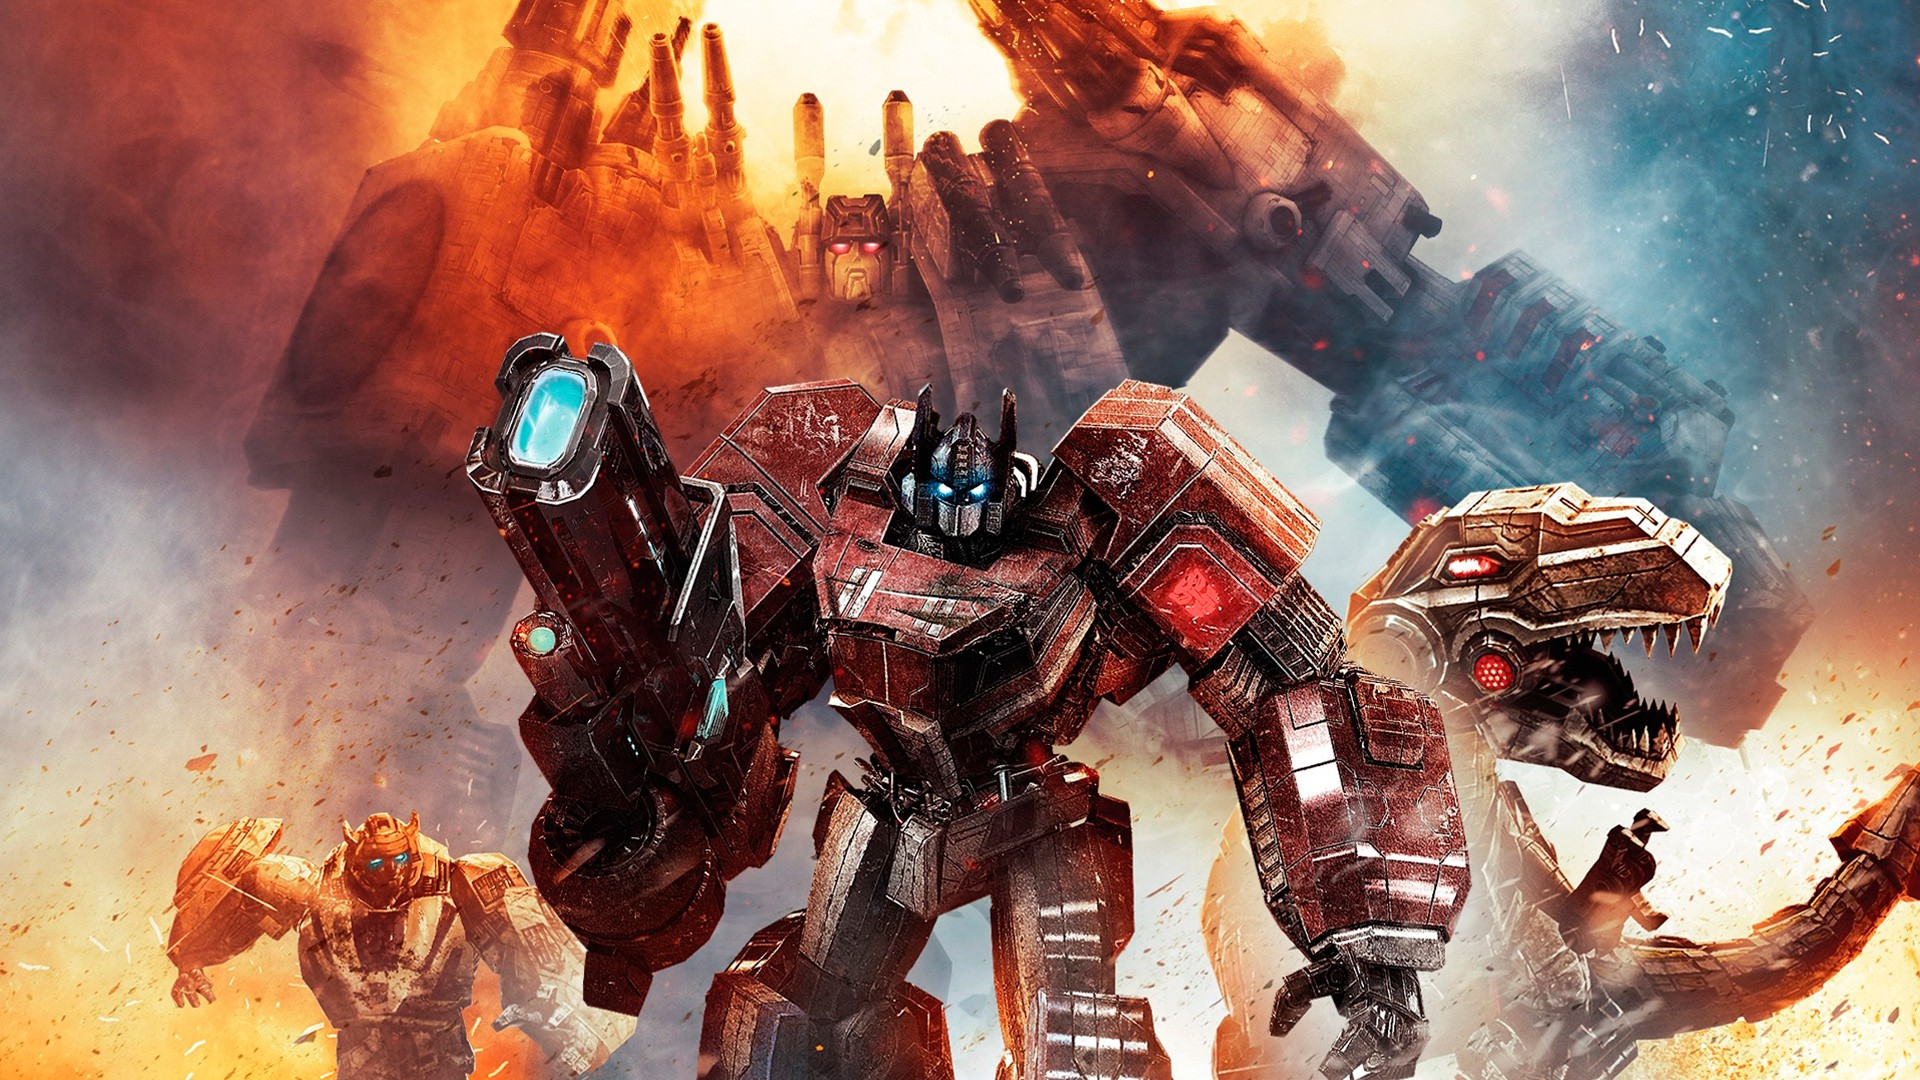 Transformers Fall Of Cybertron wallpaper 256024 1920x1080